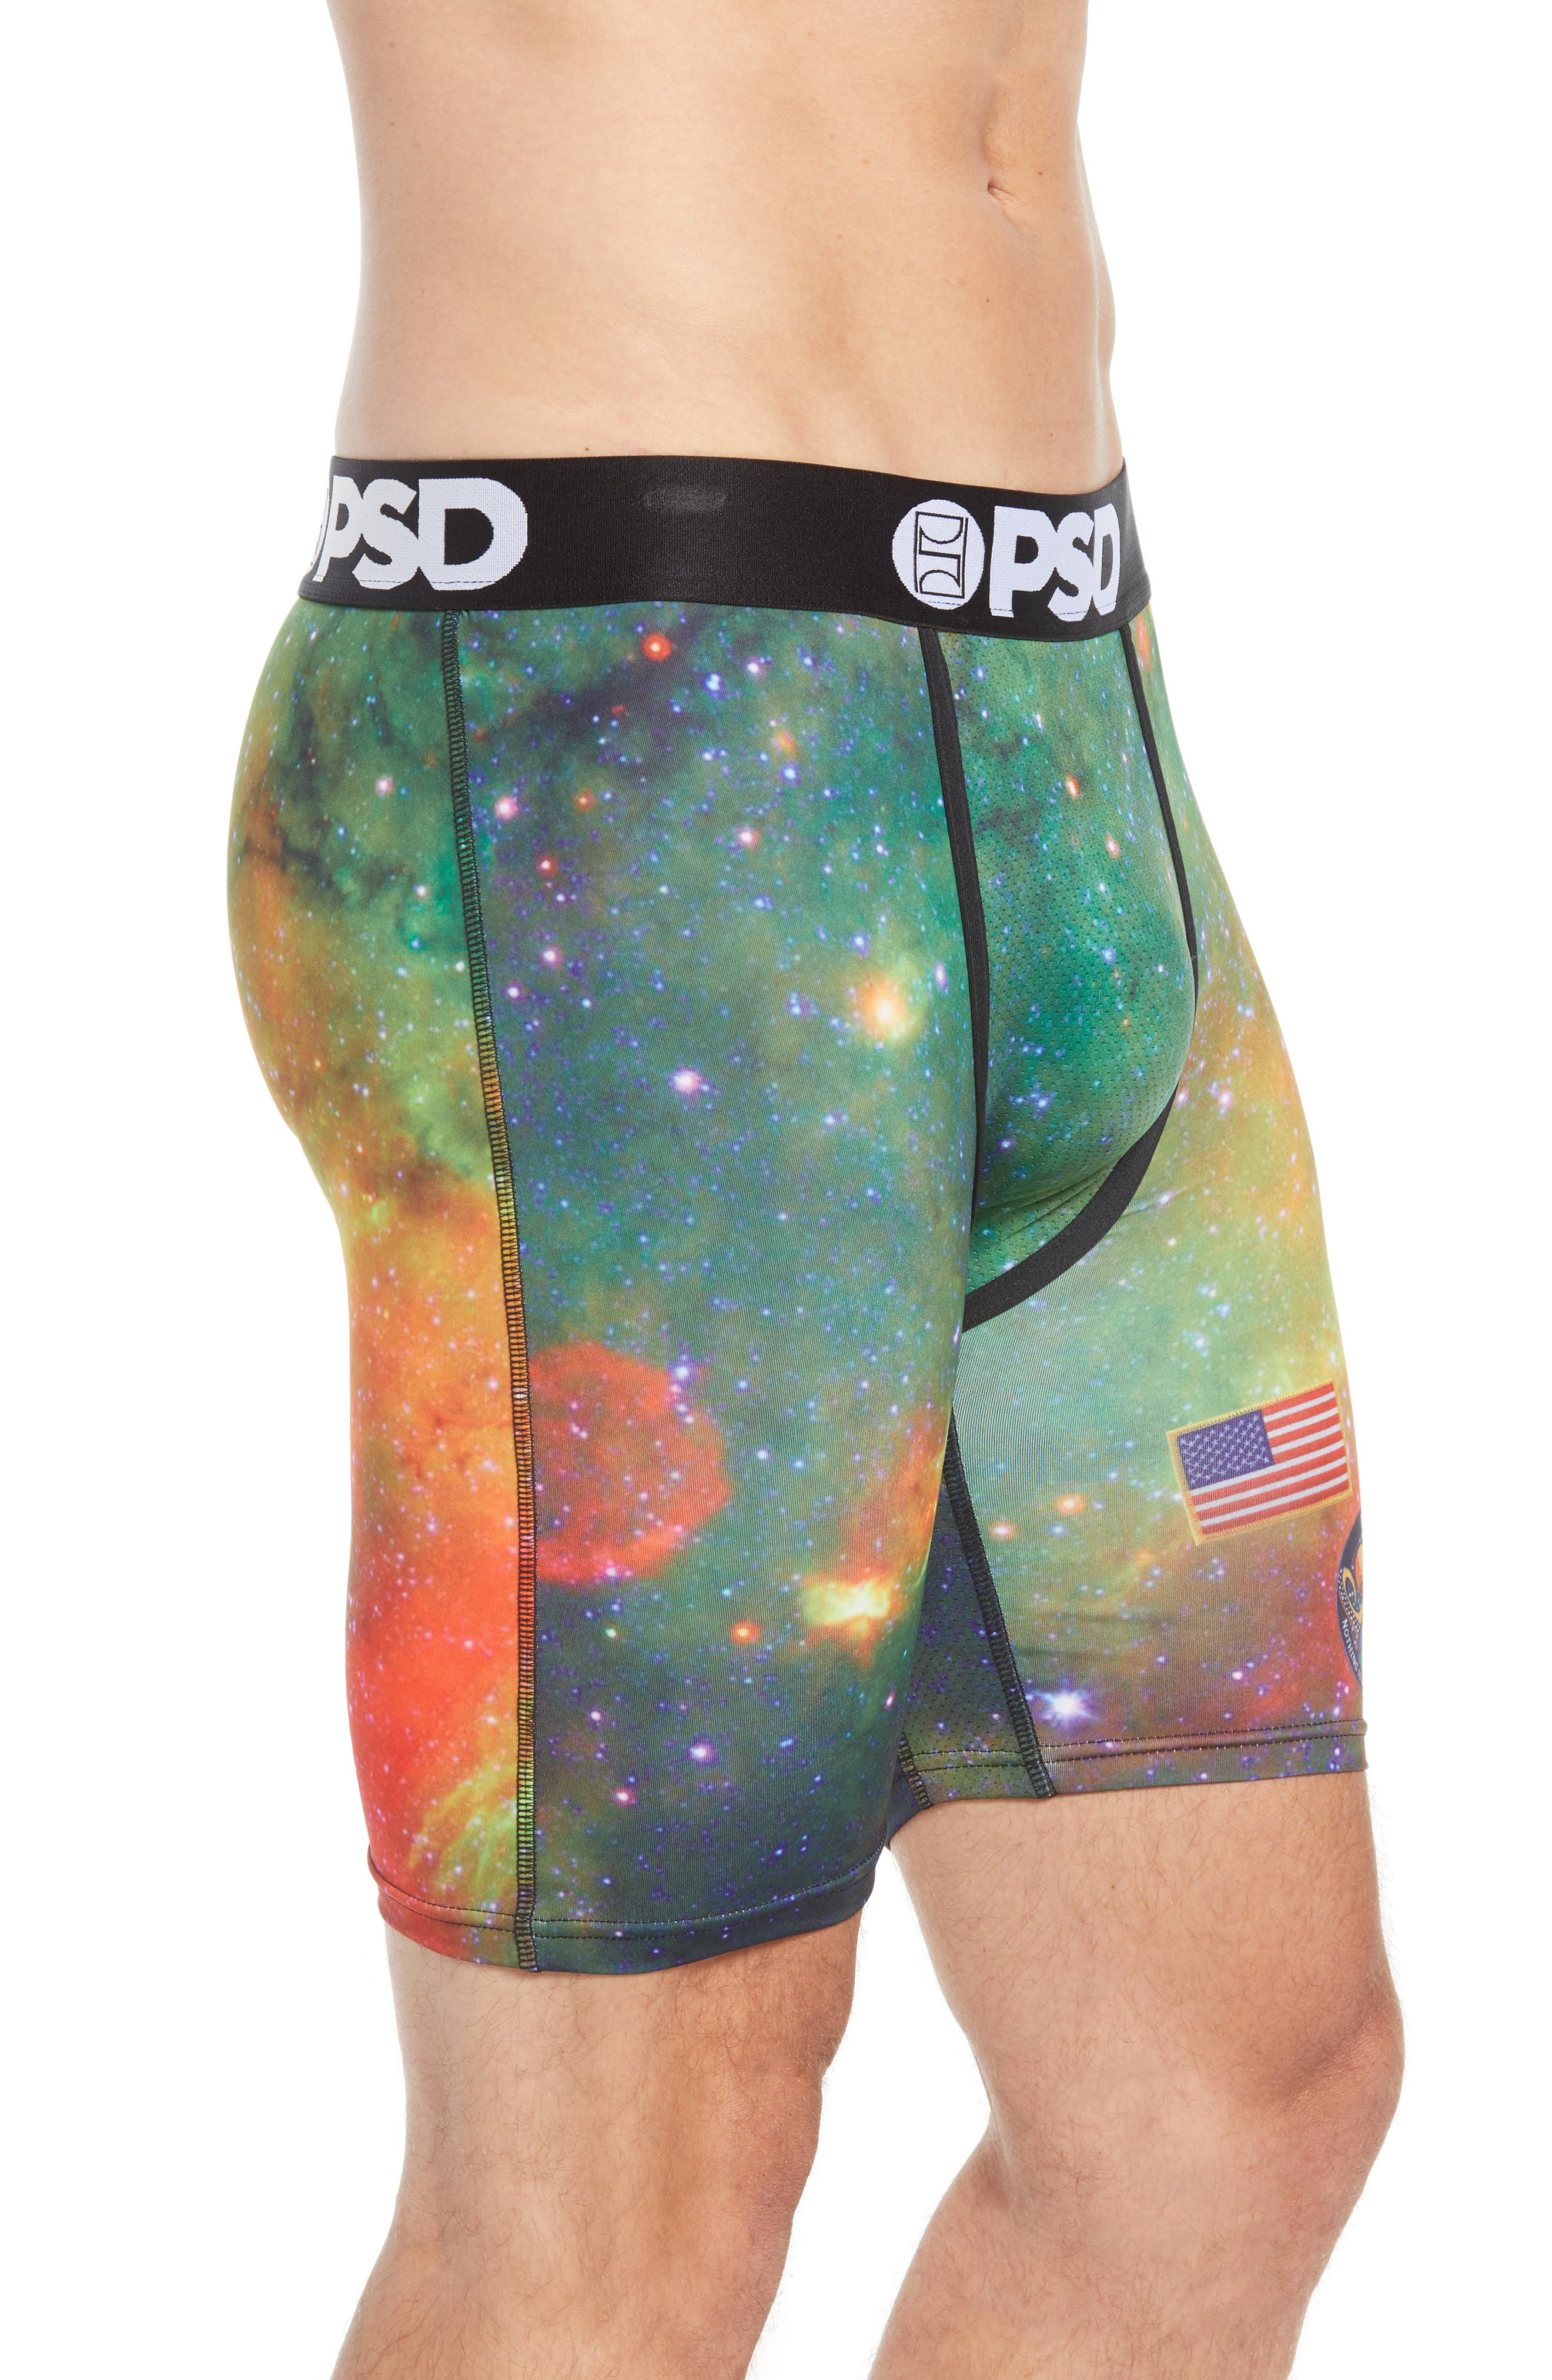 Space Camp 2.0 Boxer Briefs,                             Alternate thumbnail 3, color,                             300